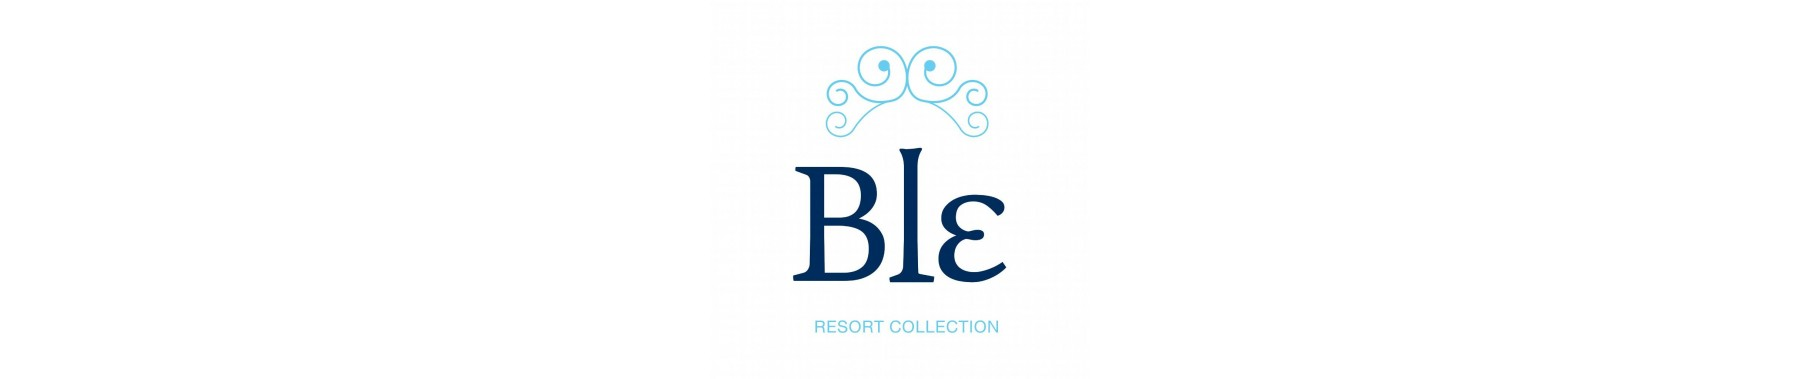 BLE RESORT COLLECTION